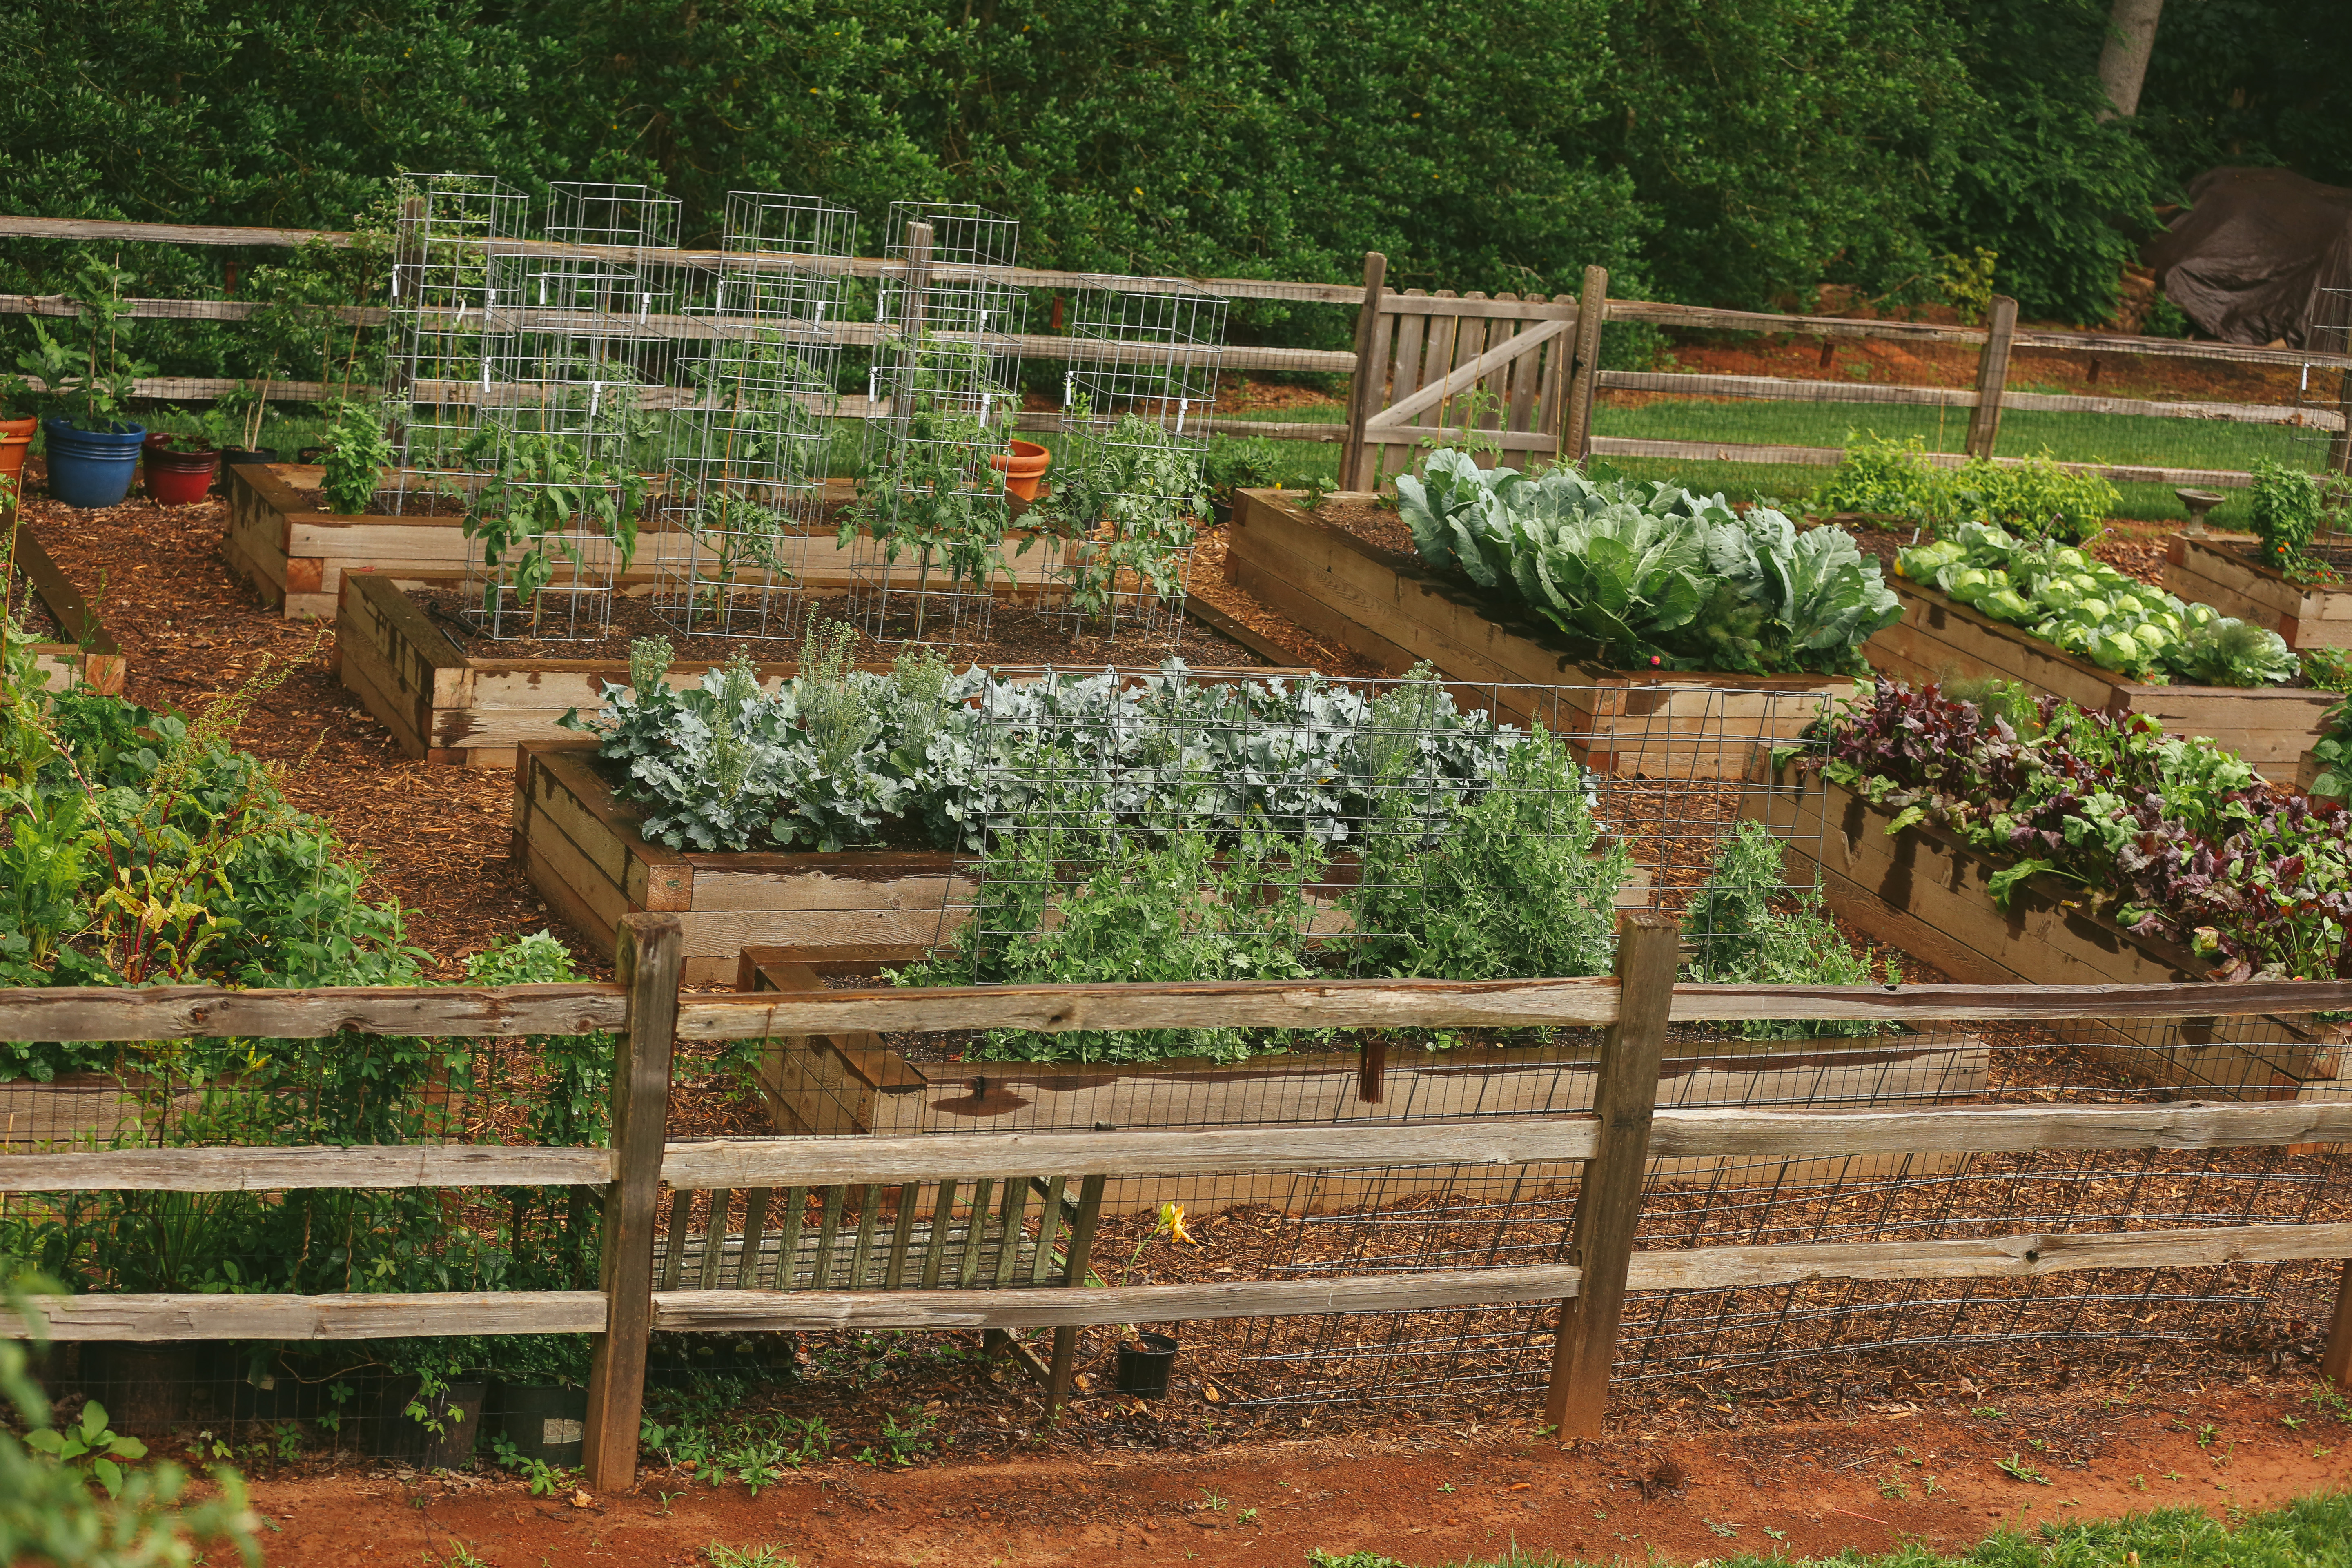 Rotating Crops for Healthier Plants and Better Soil